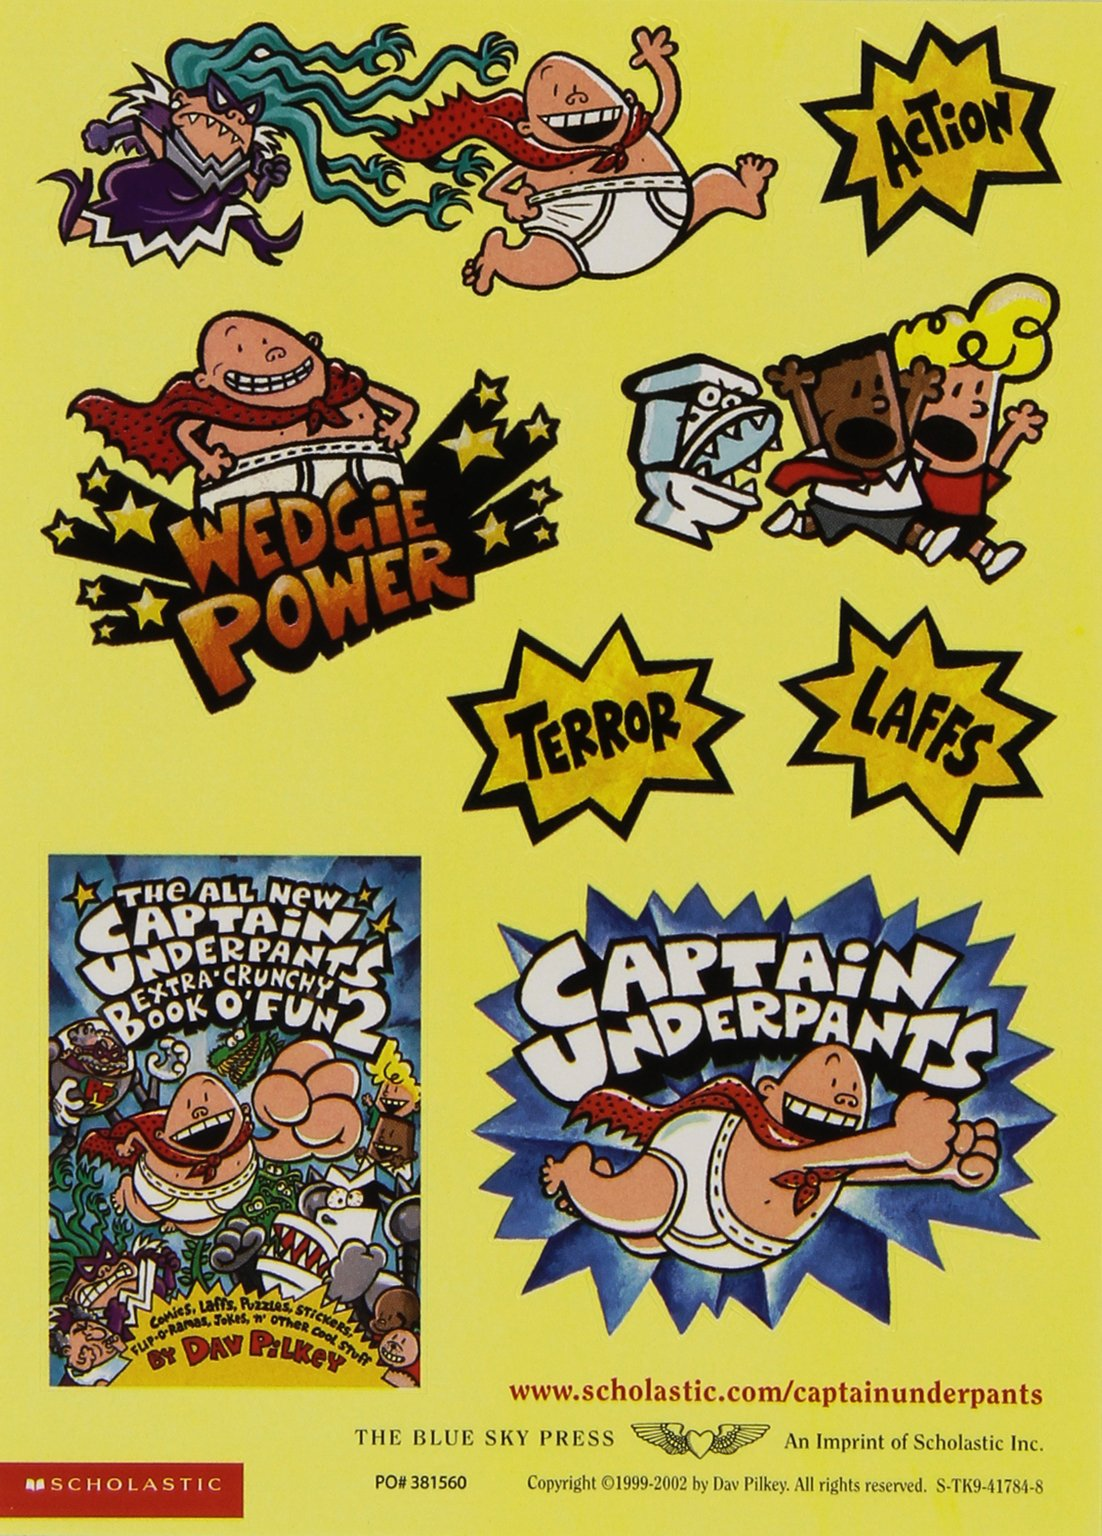 The New Captain Underpants Collection (Books 1-5) by The Blue Sky Press (Image #7)